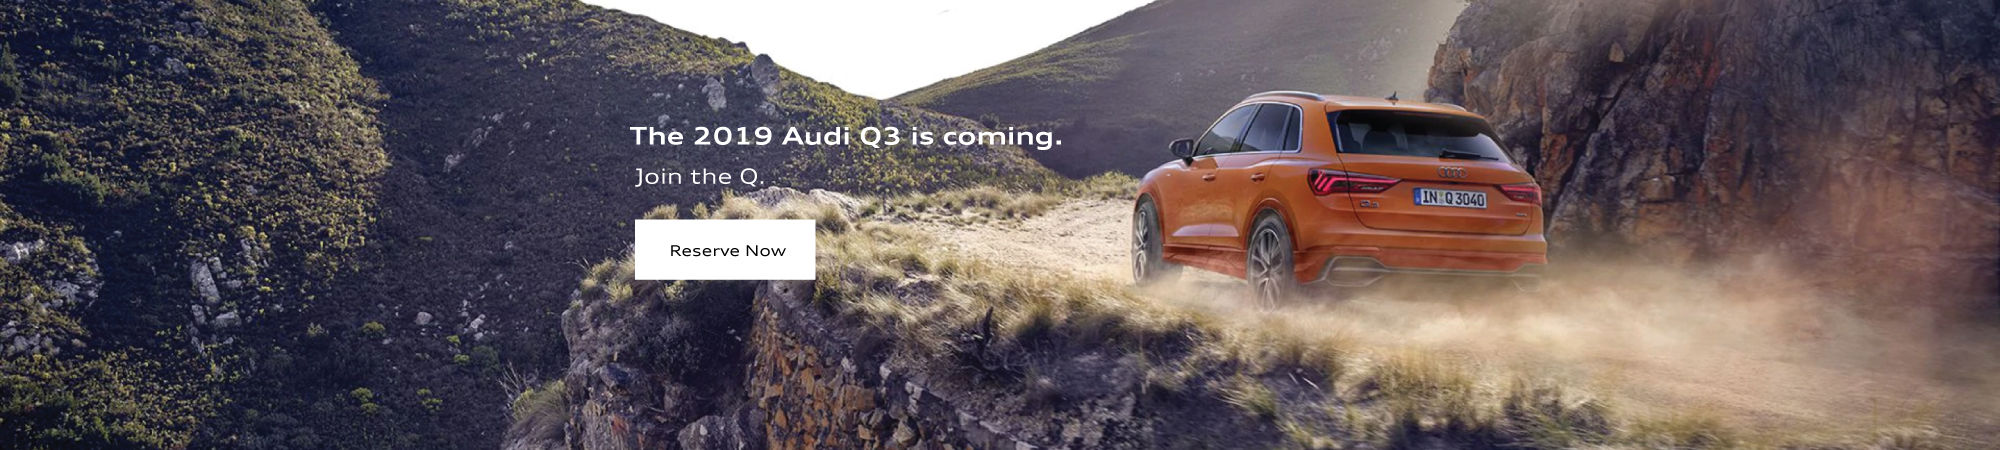 Reserve Your 2019 Audi Q3 Desktop